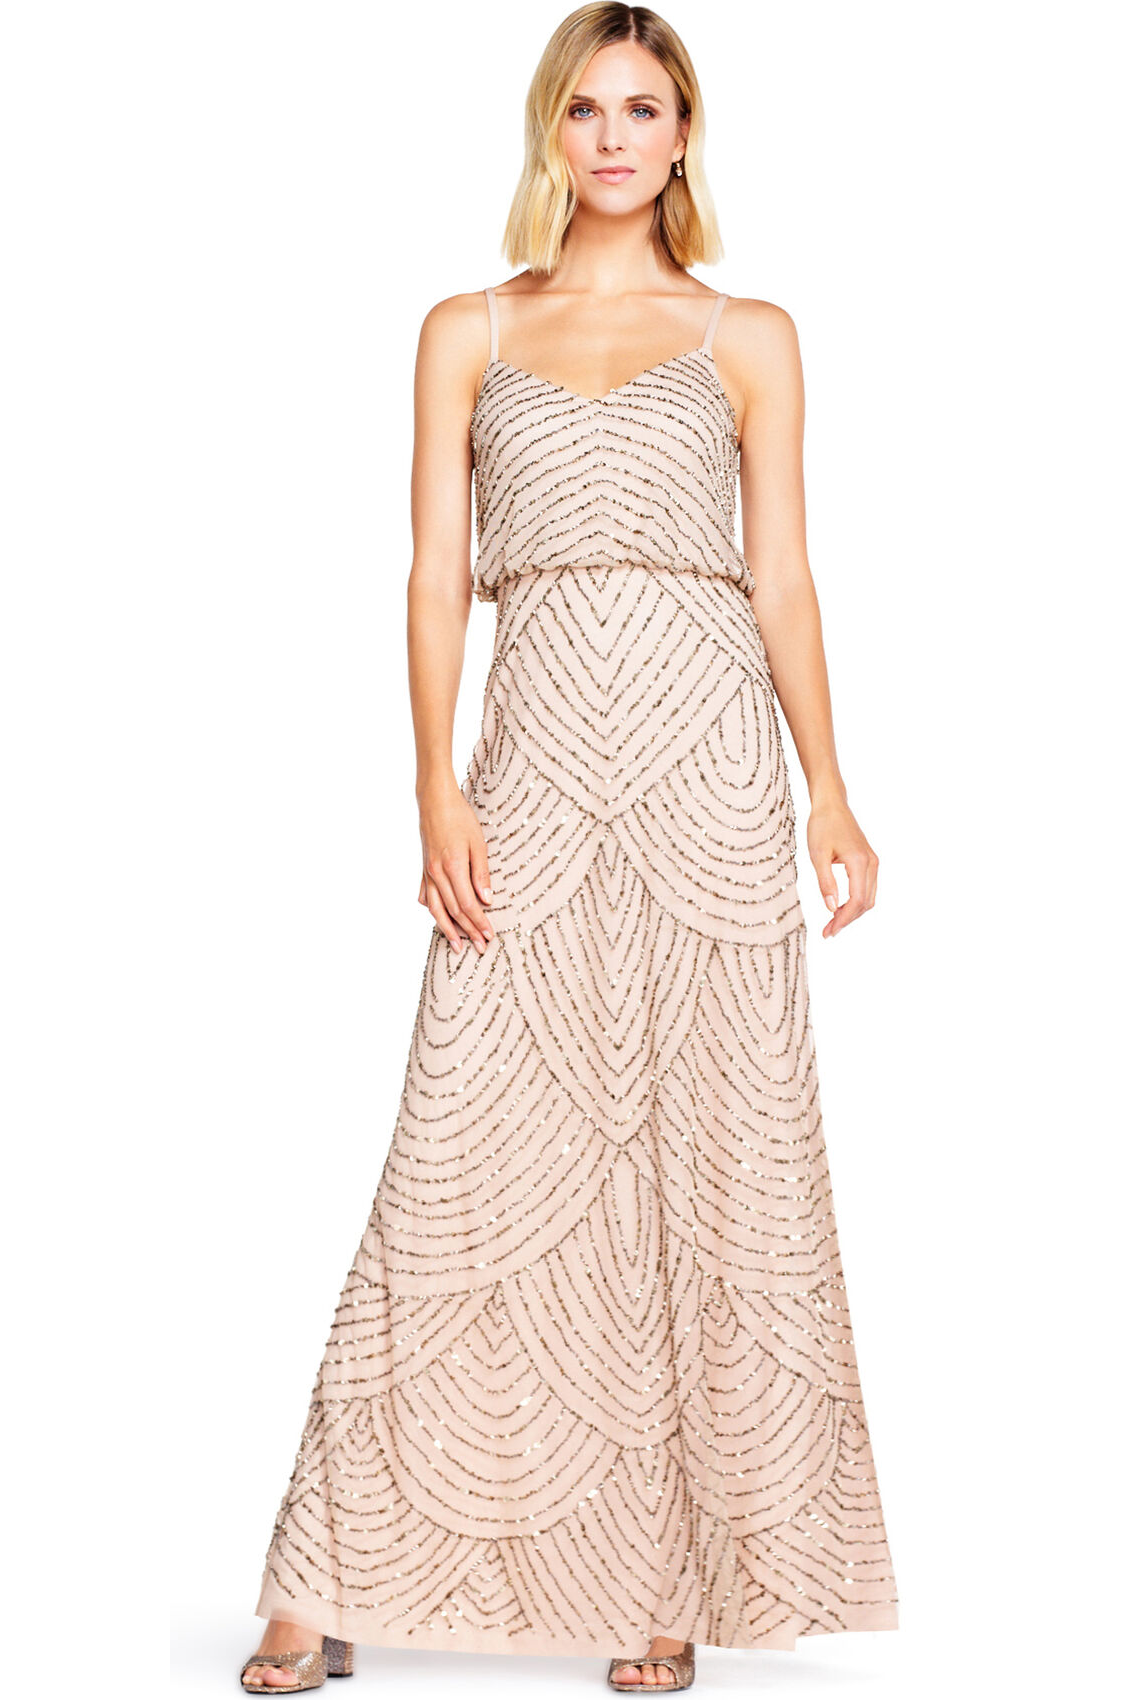 Gatsby Art Deco Blouson Beaded Gown By Adrianna Papell - Taupe Pink